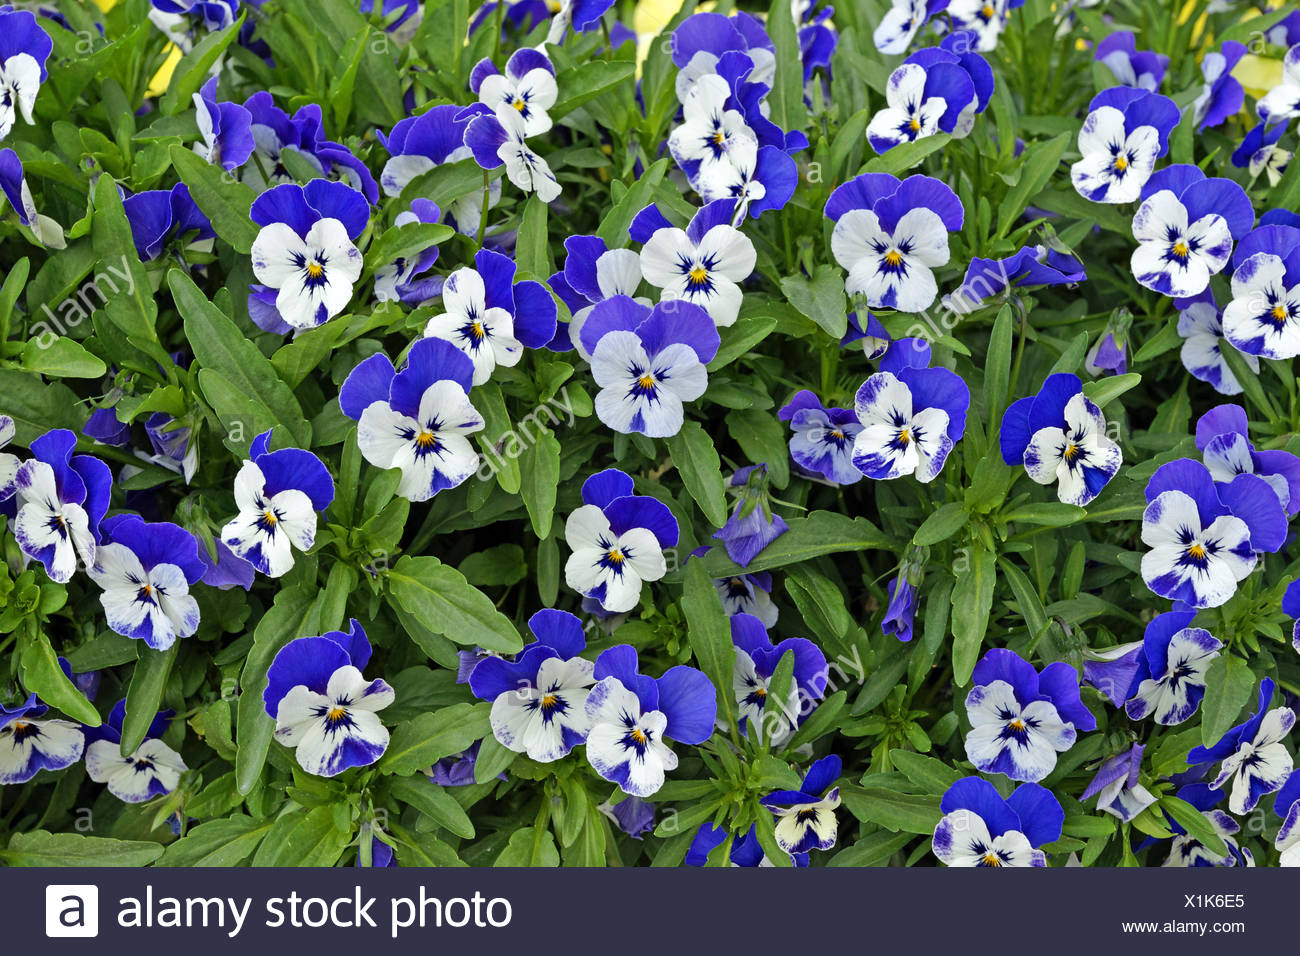 Europe Italy Pansy Pansies Flowers Patterns Plants Stock Photo